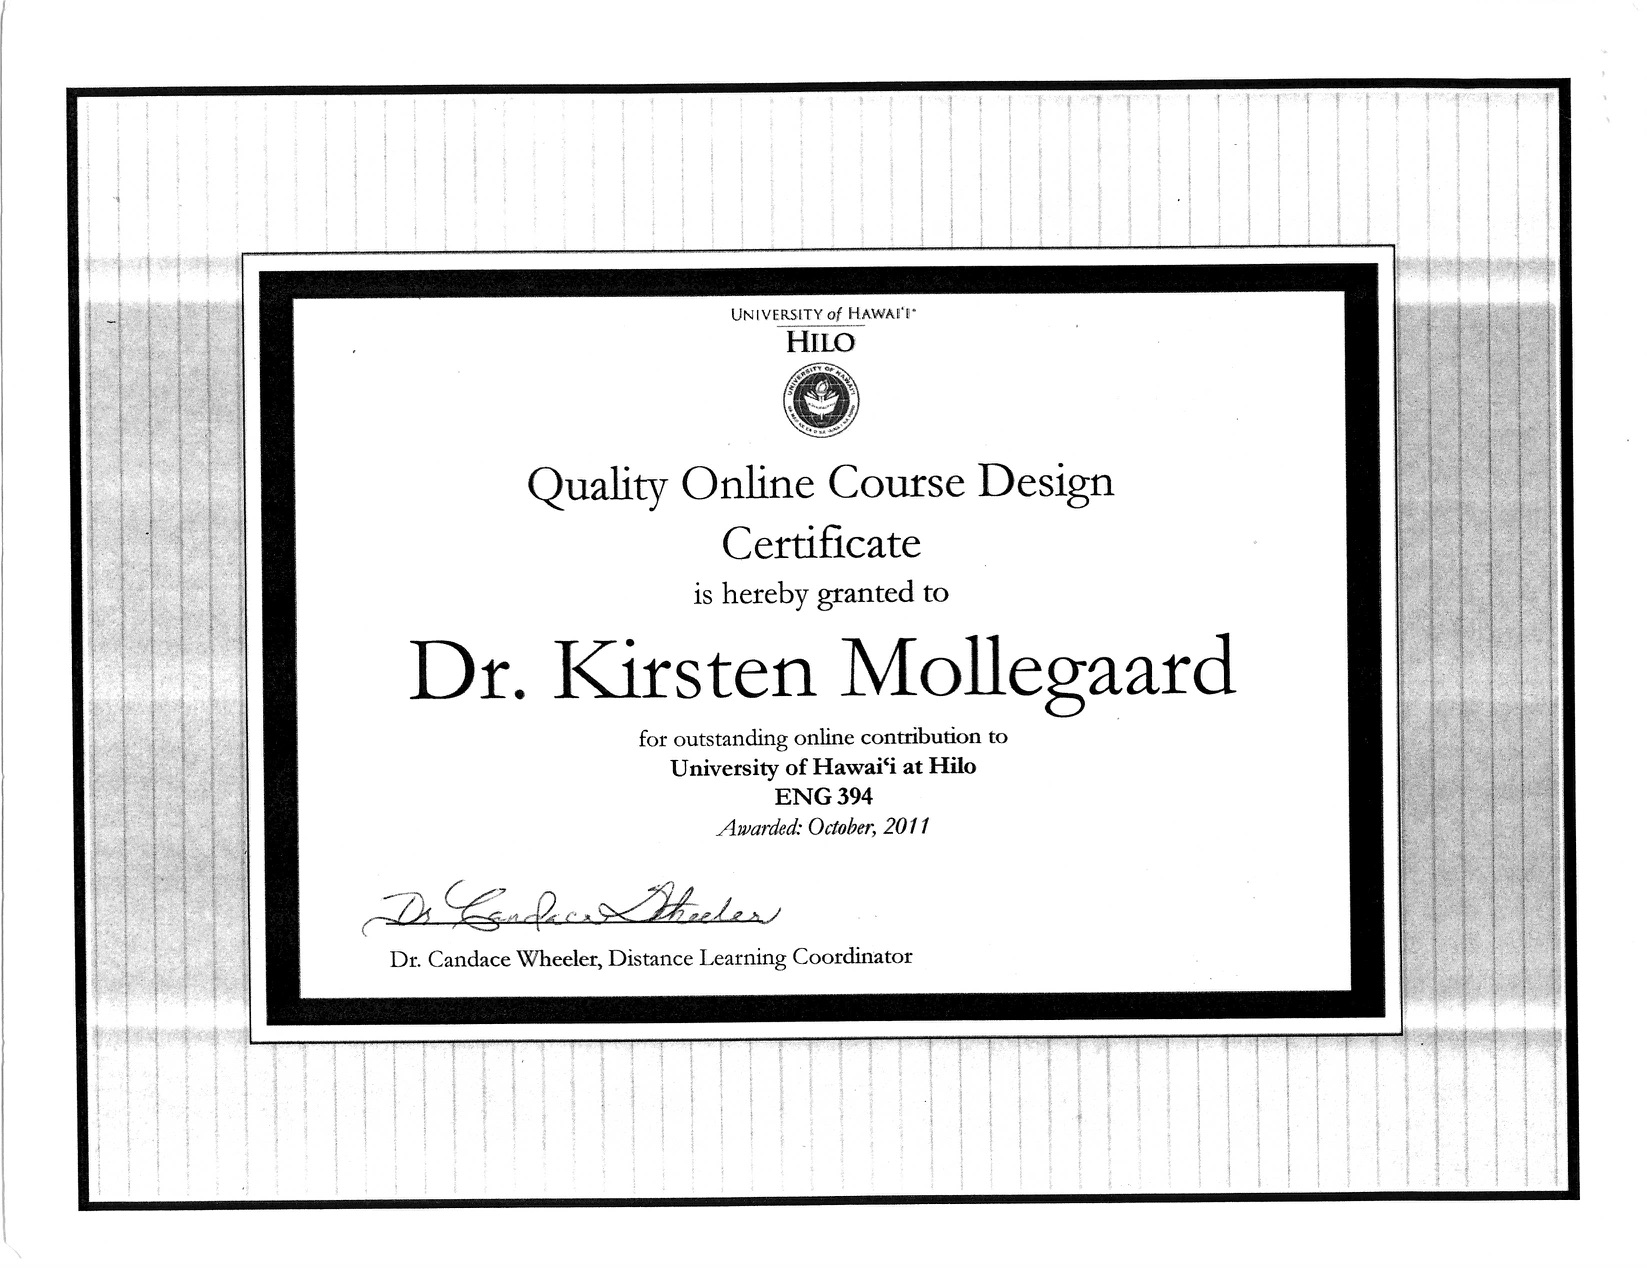 Quality Online Course Design Certificate, awarded to Kirsten Møllegaard